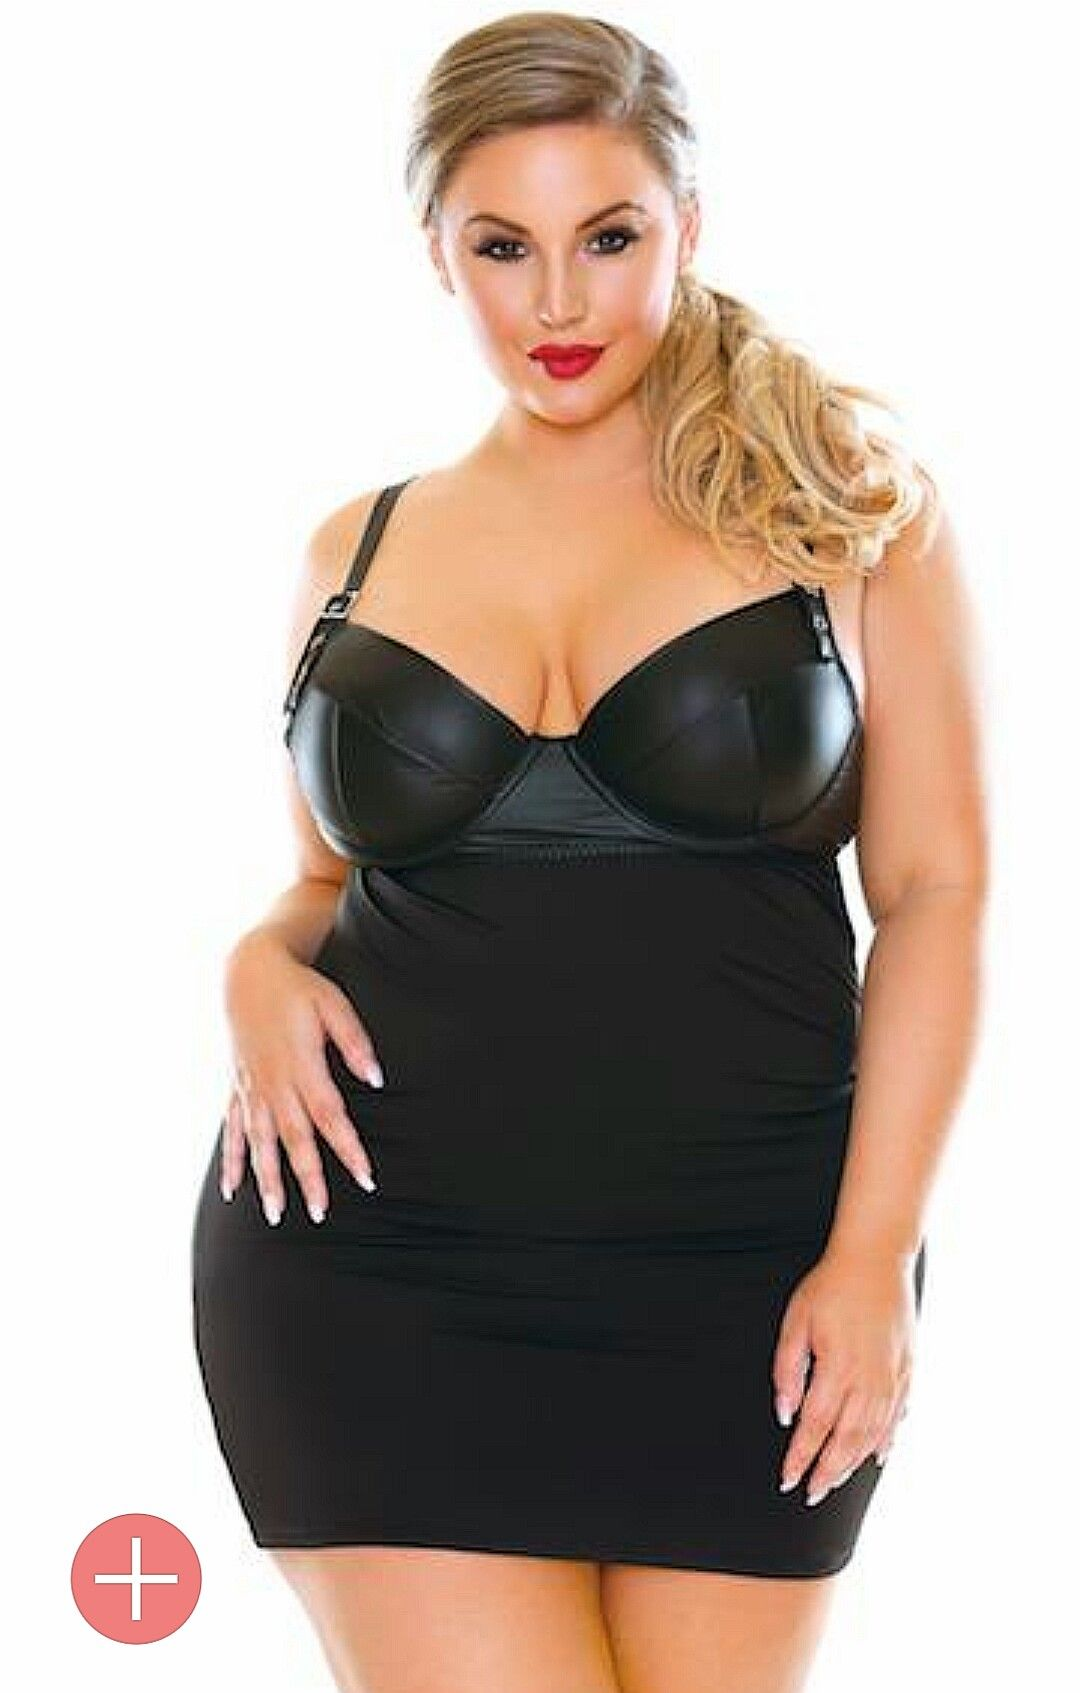 2bdd5878d5 Ashley Alexiss Plus Size Lingerie Models